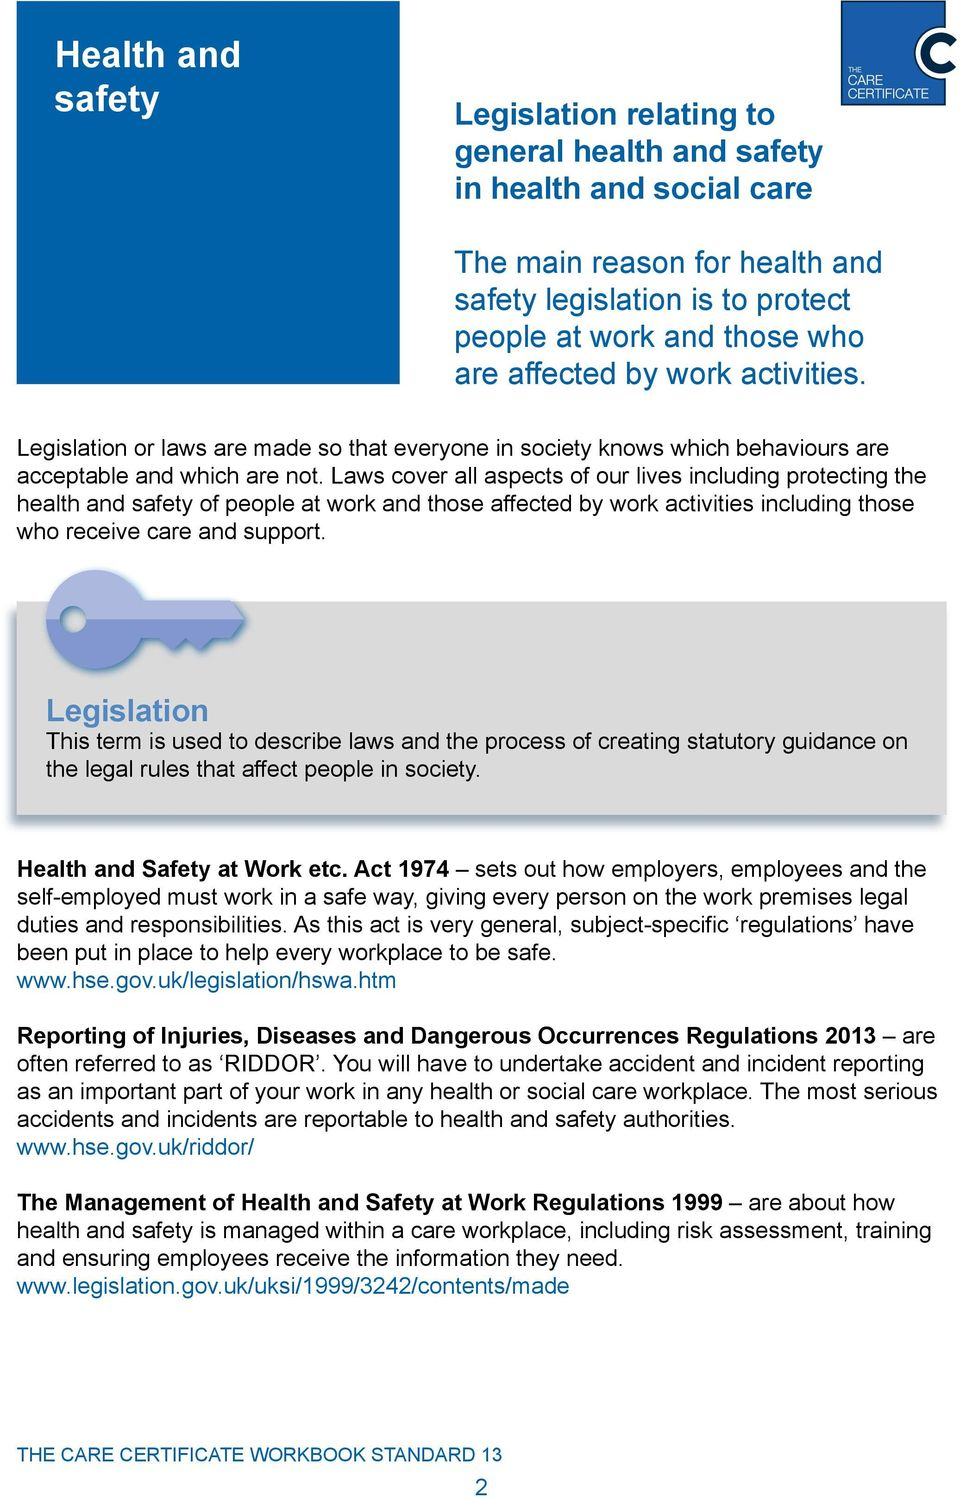 health and safety in health and social care workplace